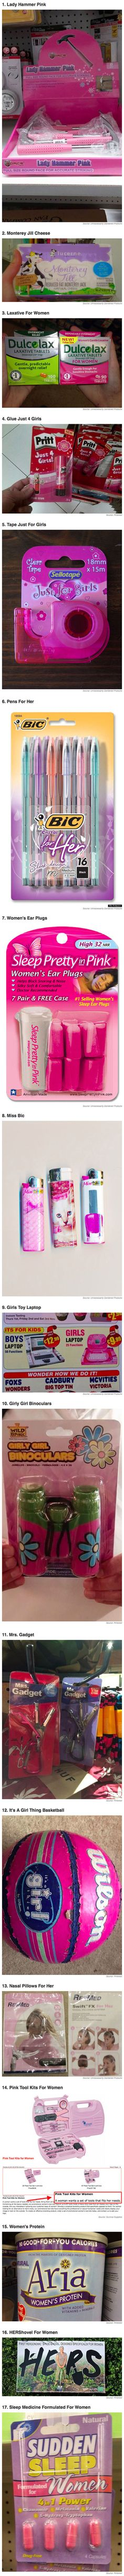 Here are some unnecessarily gendered products that will really make you wonder.